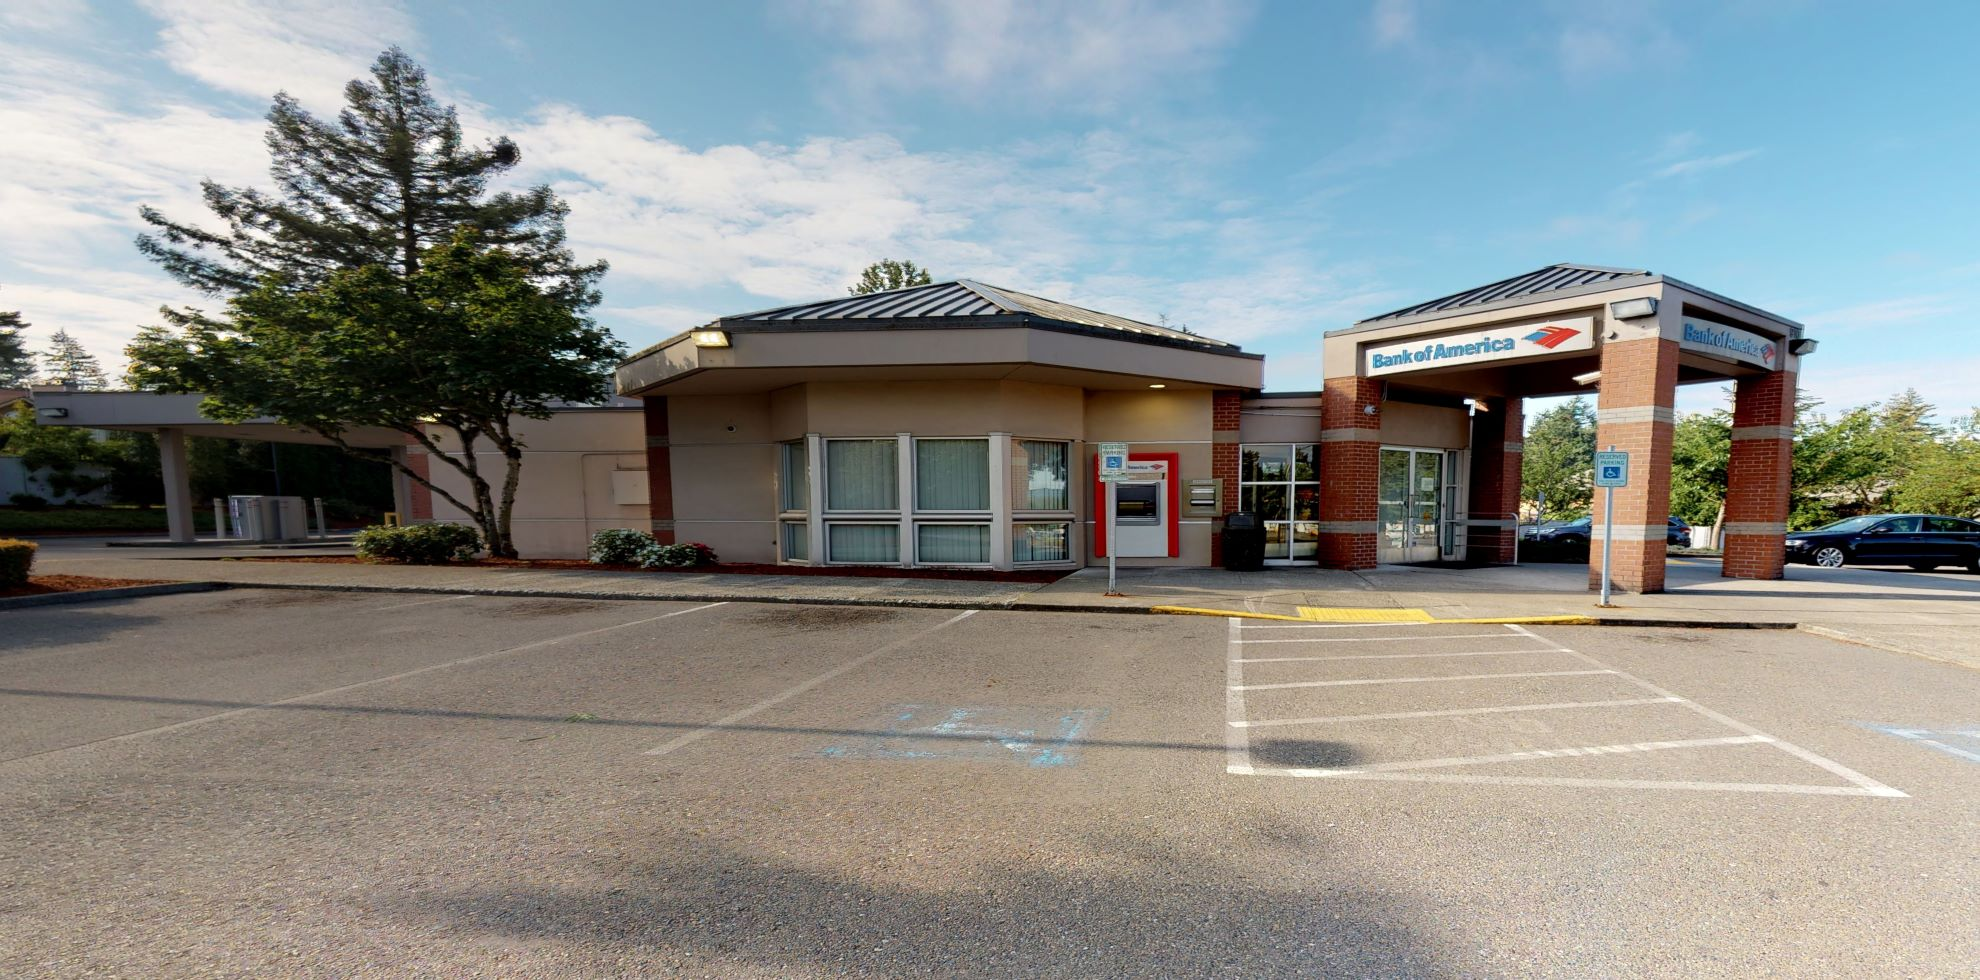 Bank of America financial center with drive-thru ATM | 910 Black Lake Blvd SW, Olympia, WA 98502